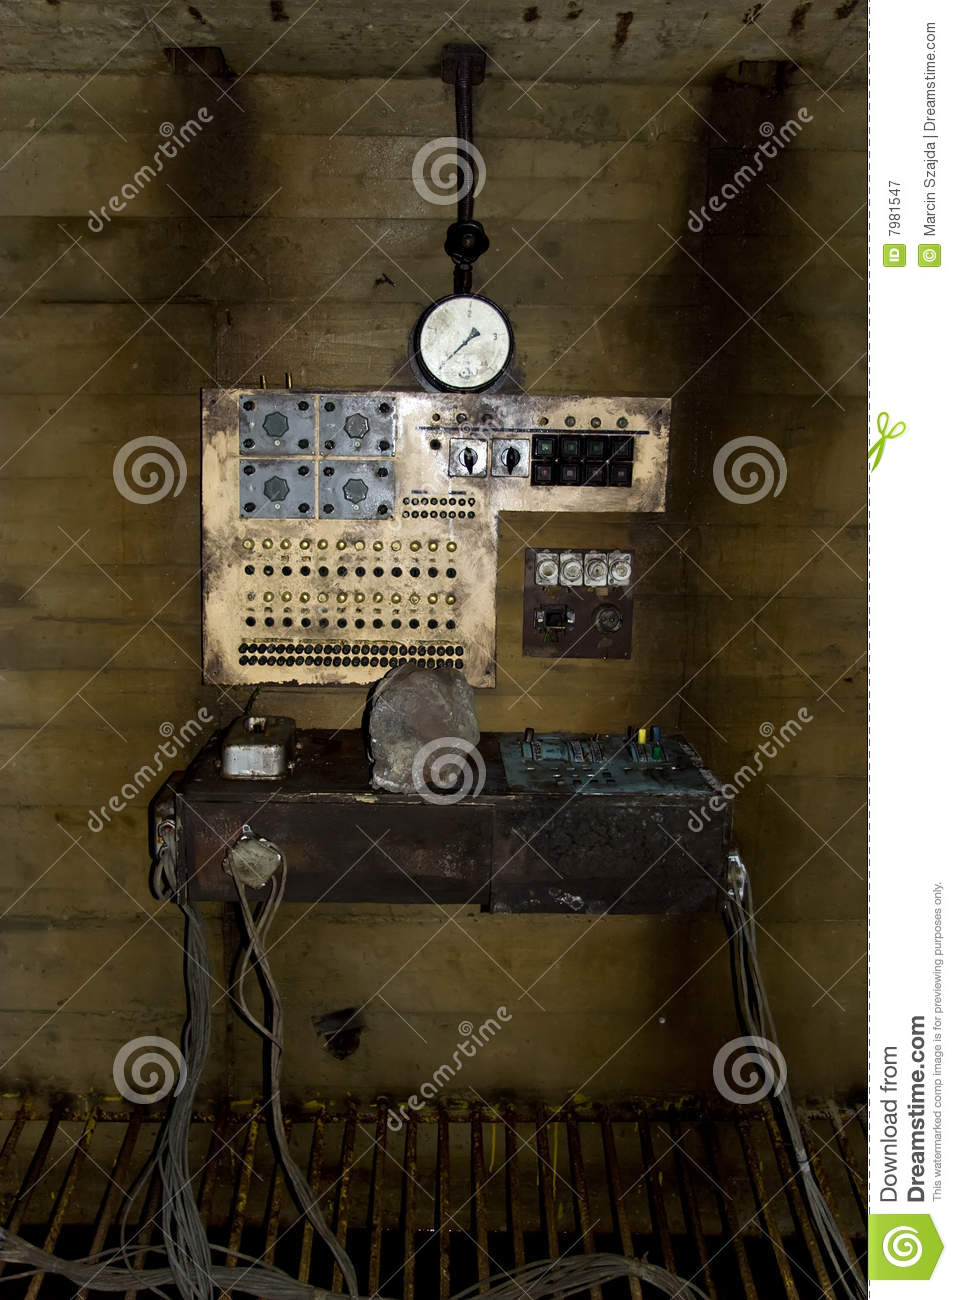 Old Science Fiction Machine Stock Image - Image of fiction, wall ...